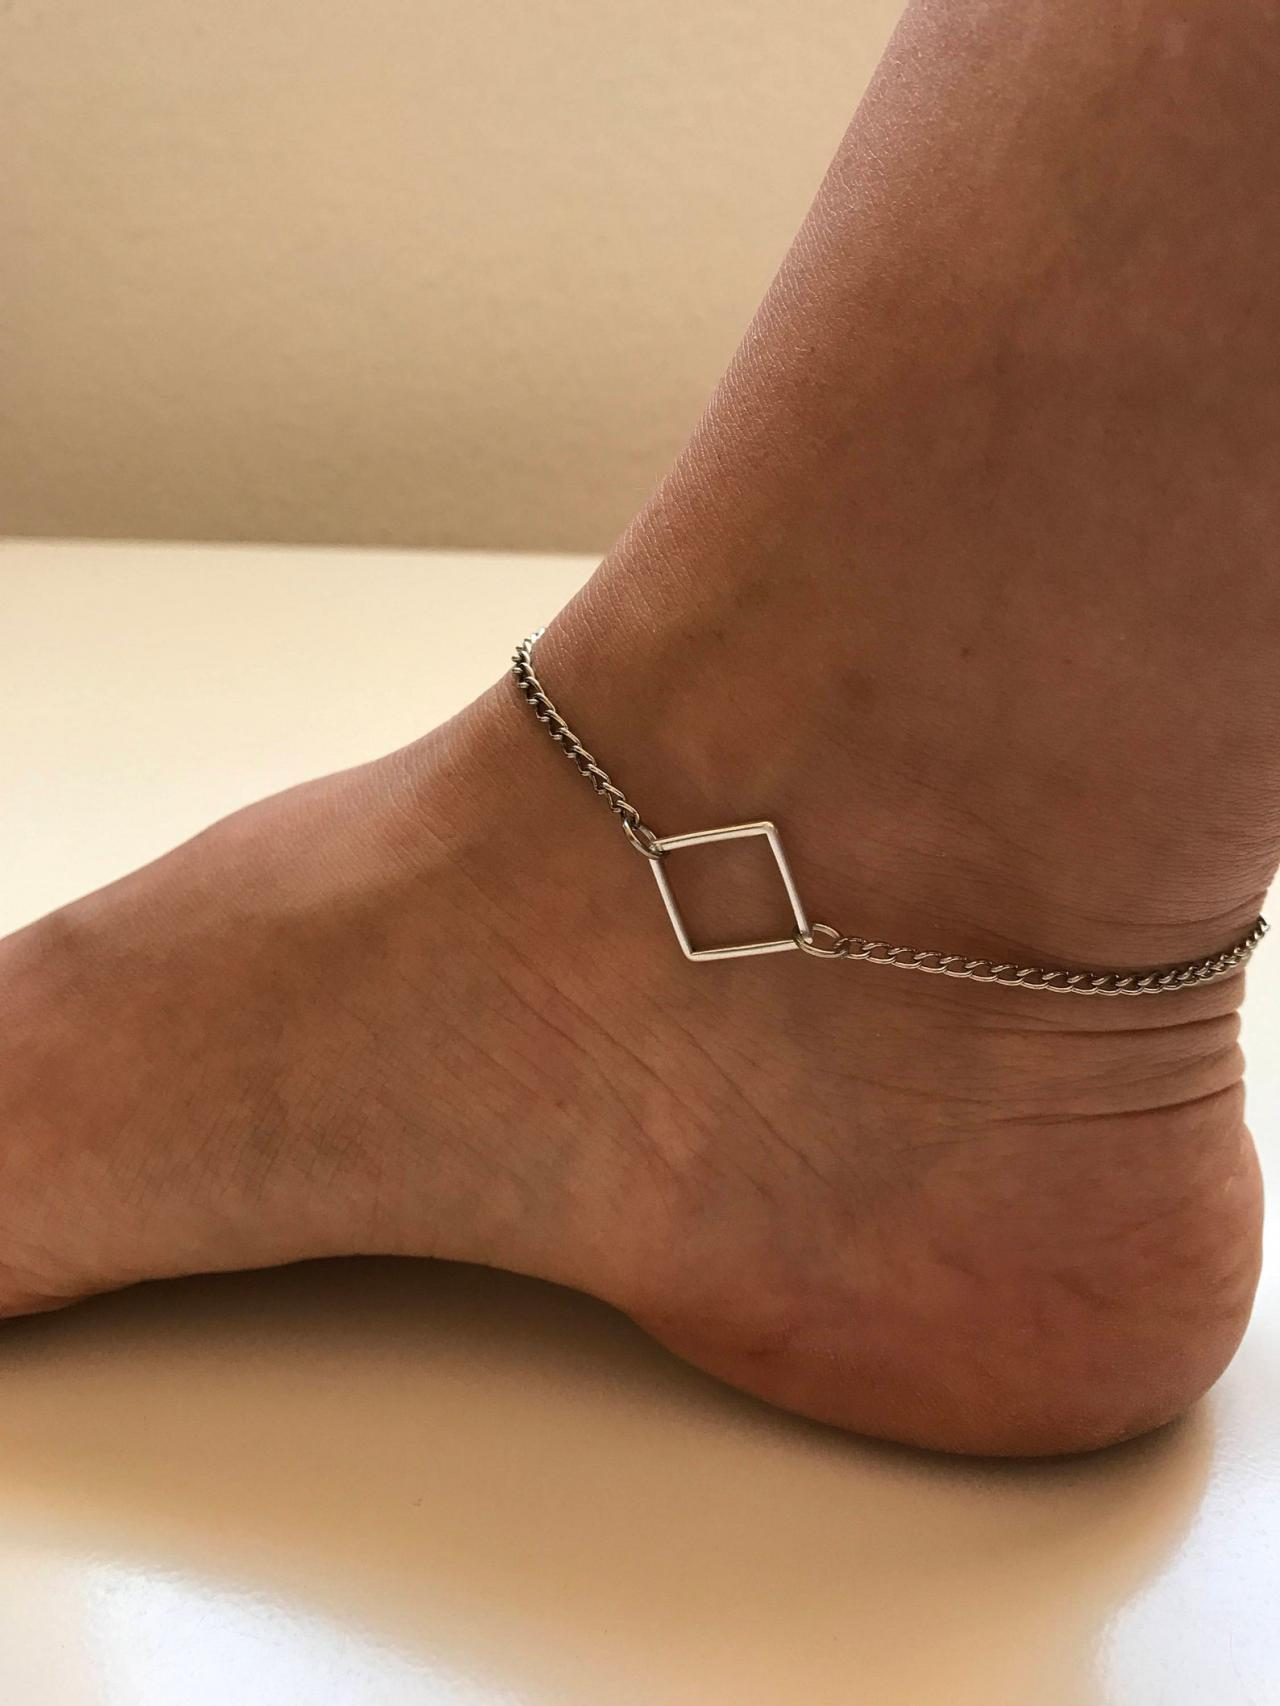 Geometry Anklet 326- faith friendship rocker metal chain anklet square circle gift adjustable current womenswear unique innovative gift